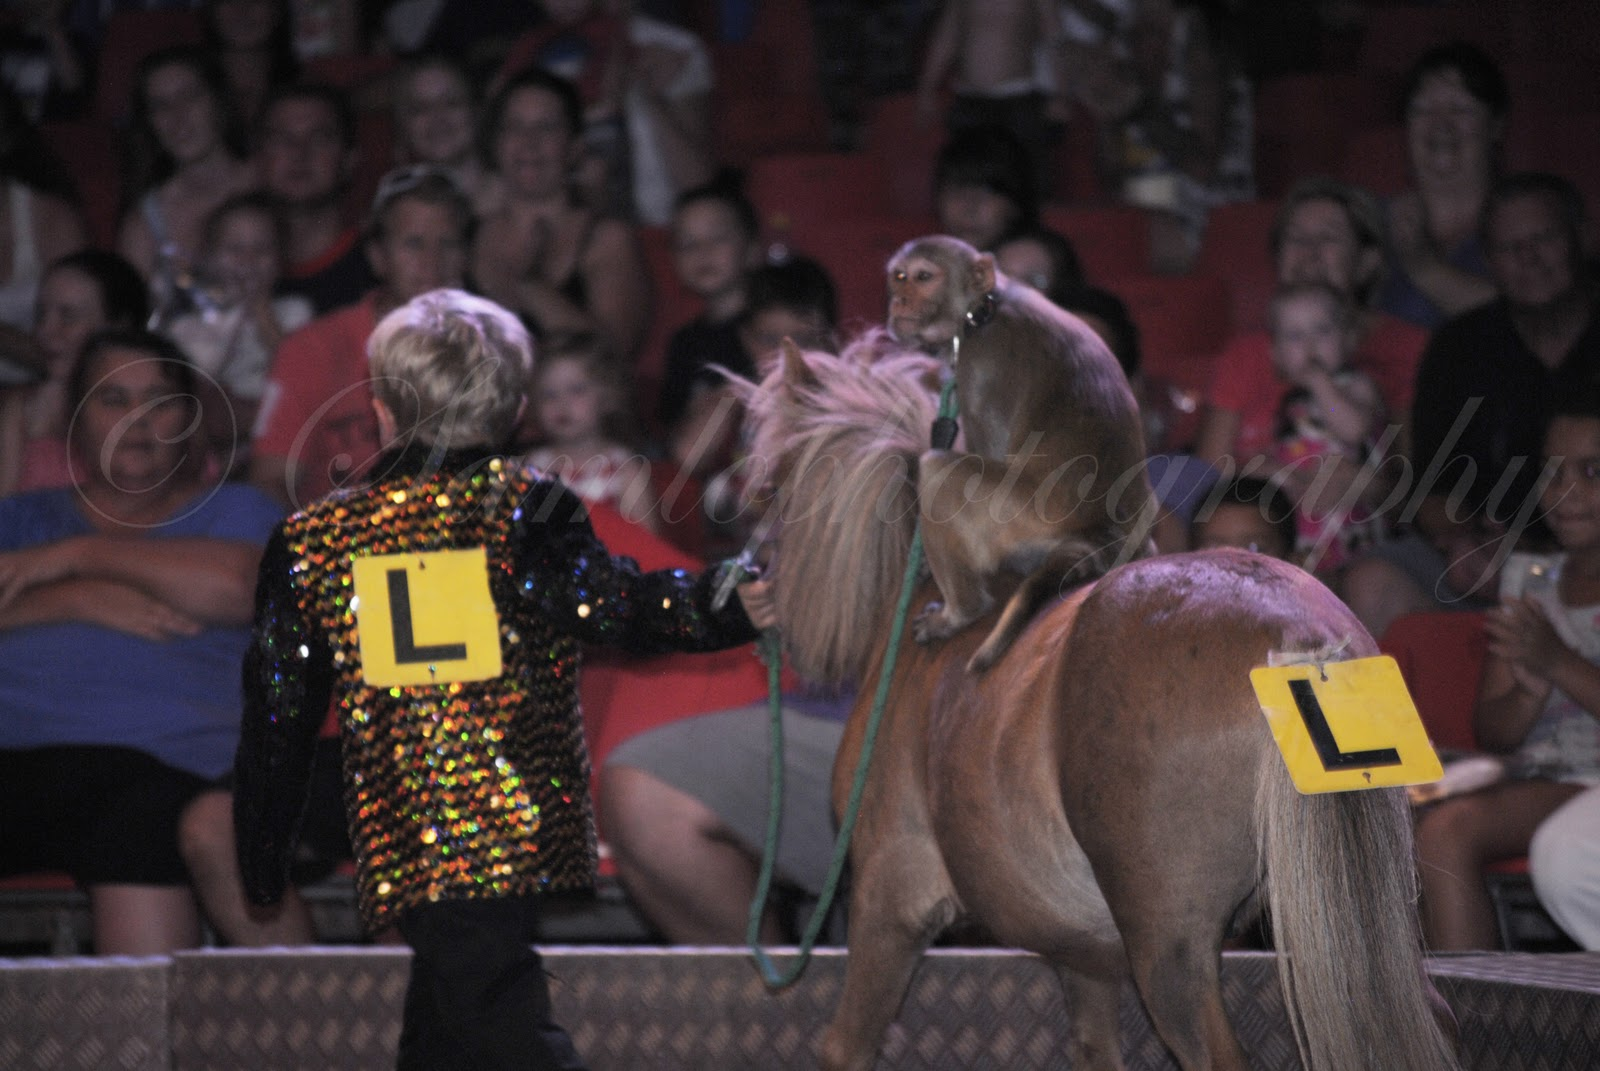 Stardust Circus - SUPPORTING CIRCUSES WITH ANIMALS